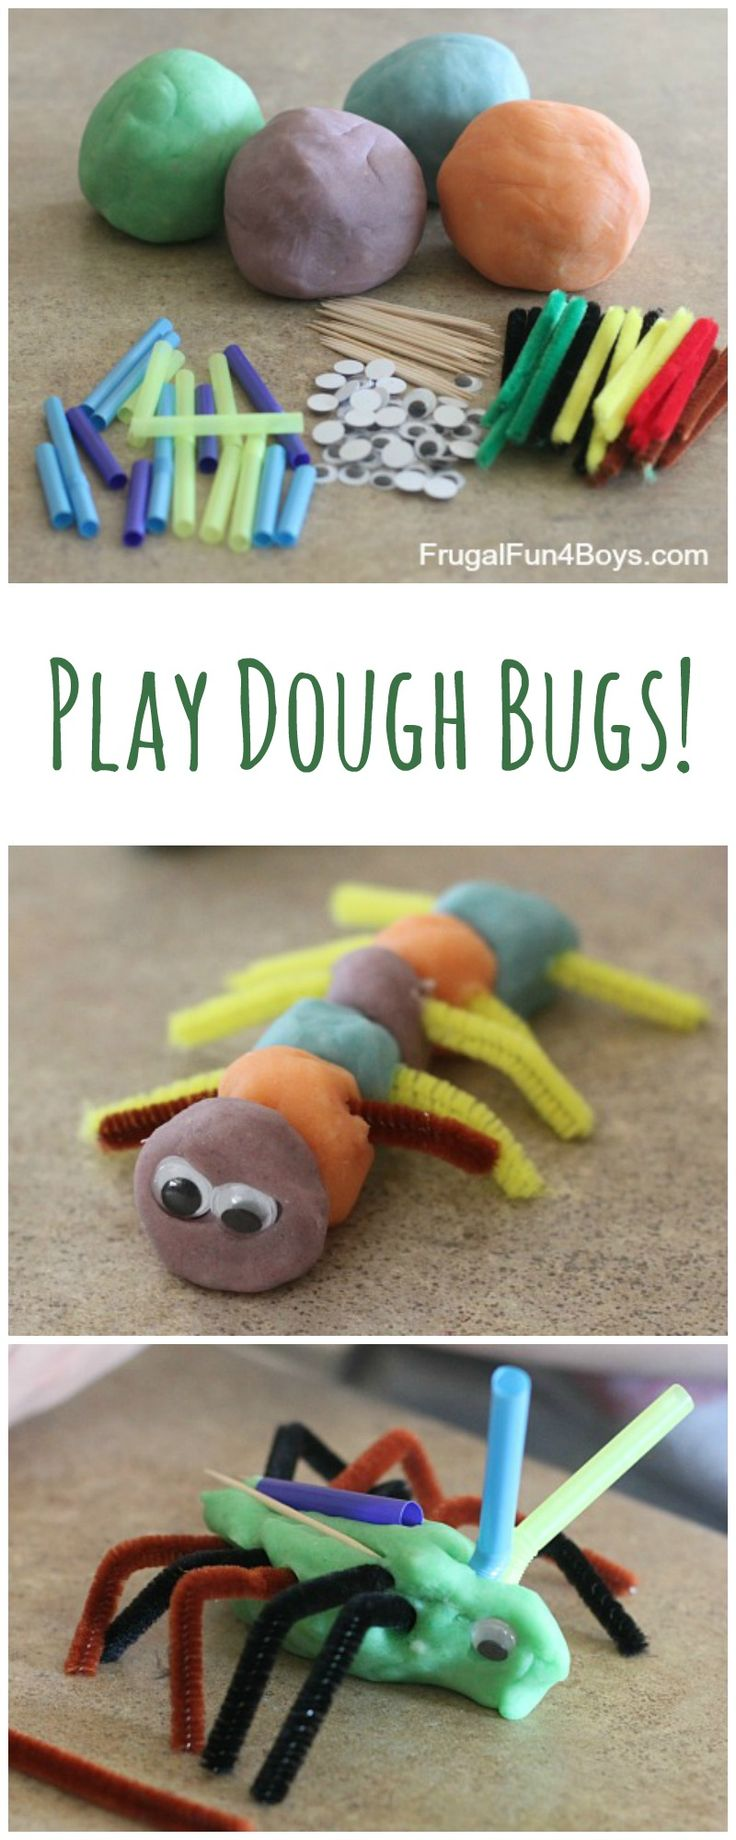 Play Dough Bugs - Make several colors of play dough and put out some loose parts for building bugs.